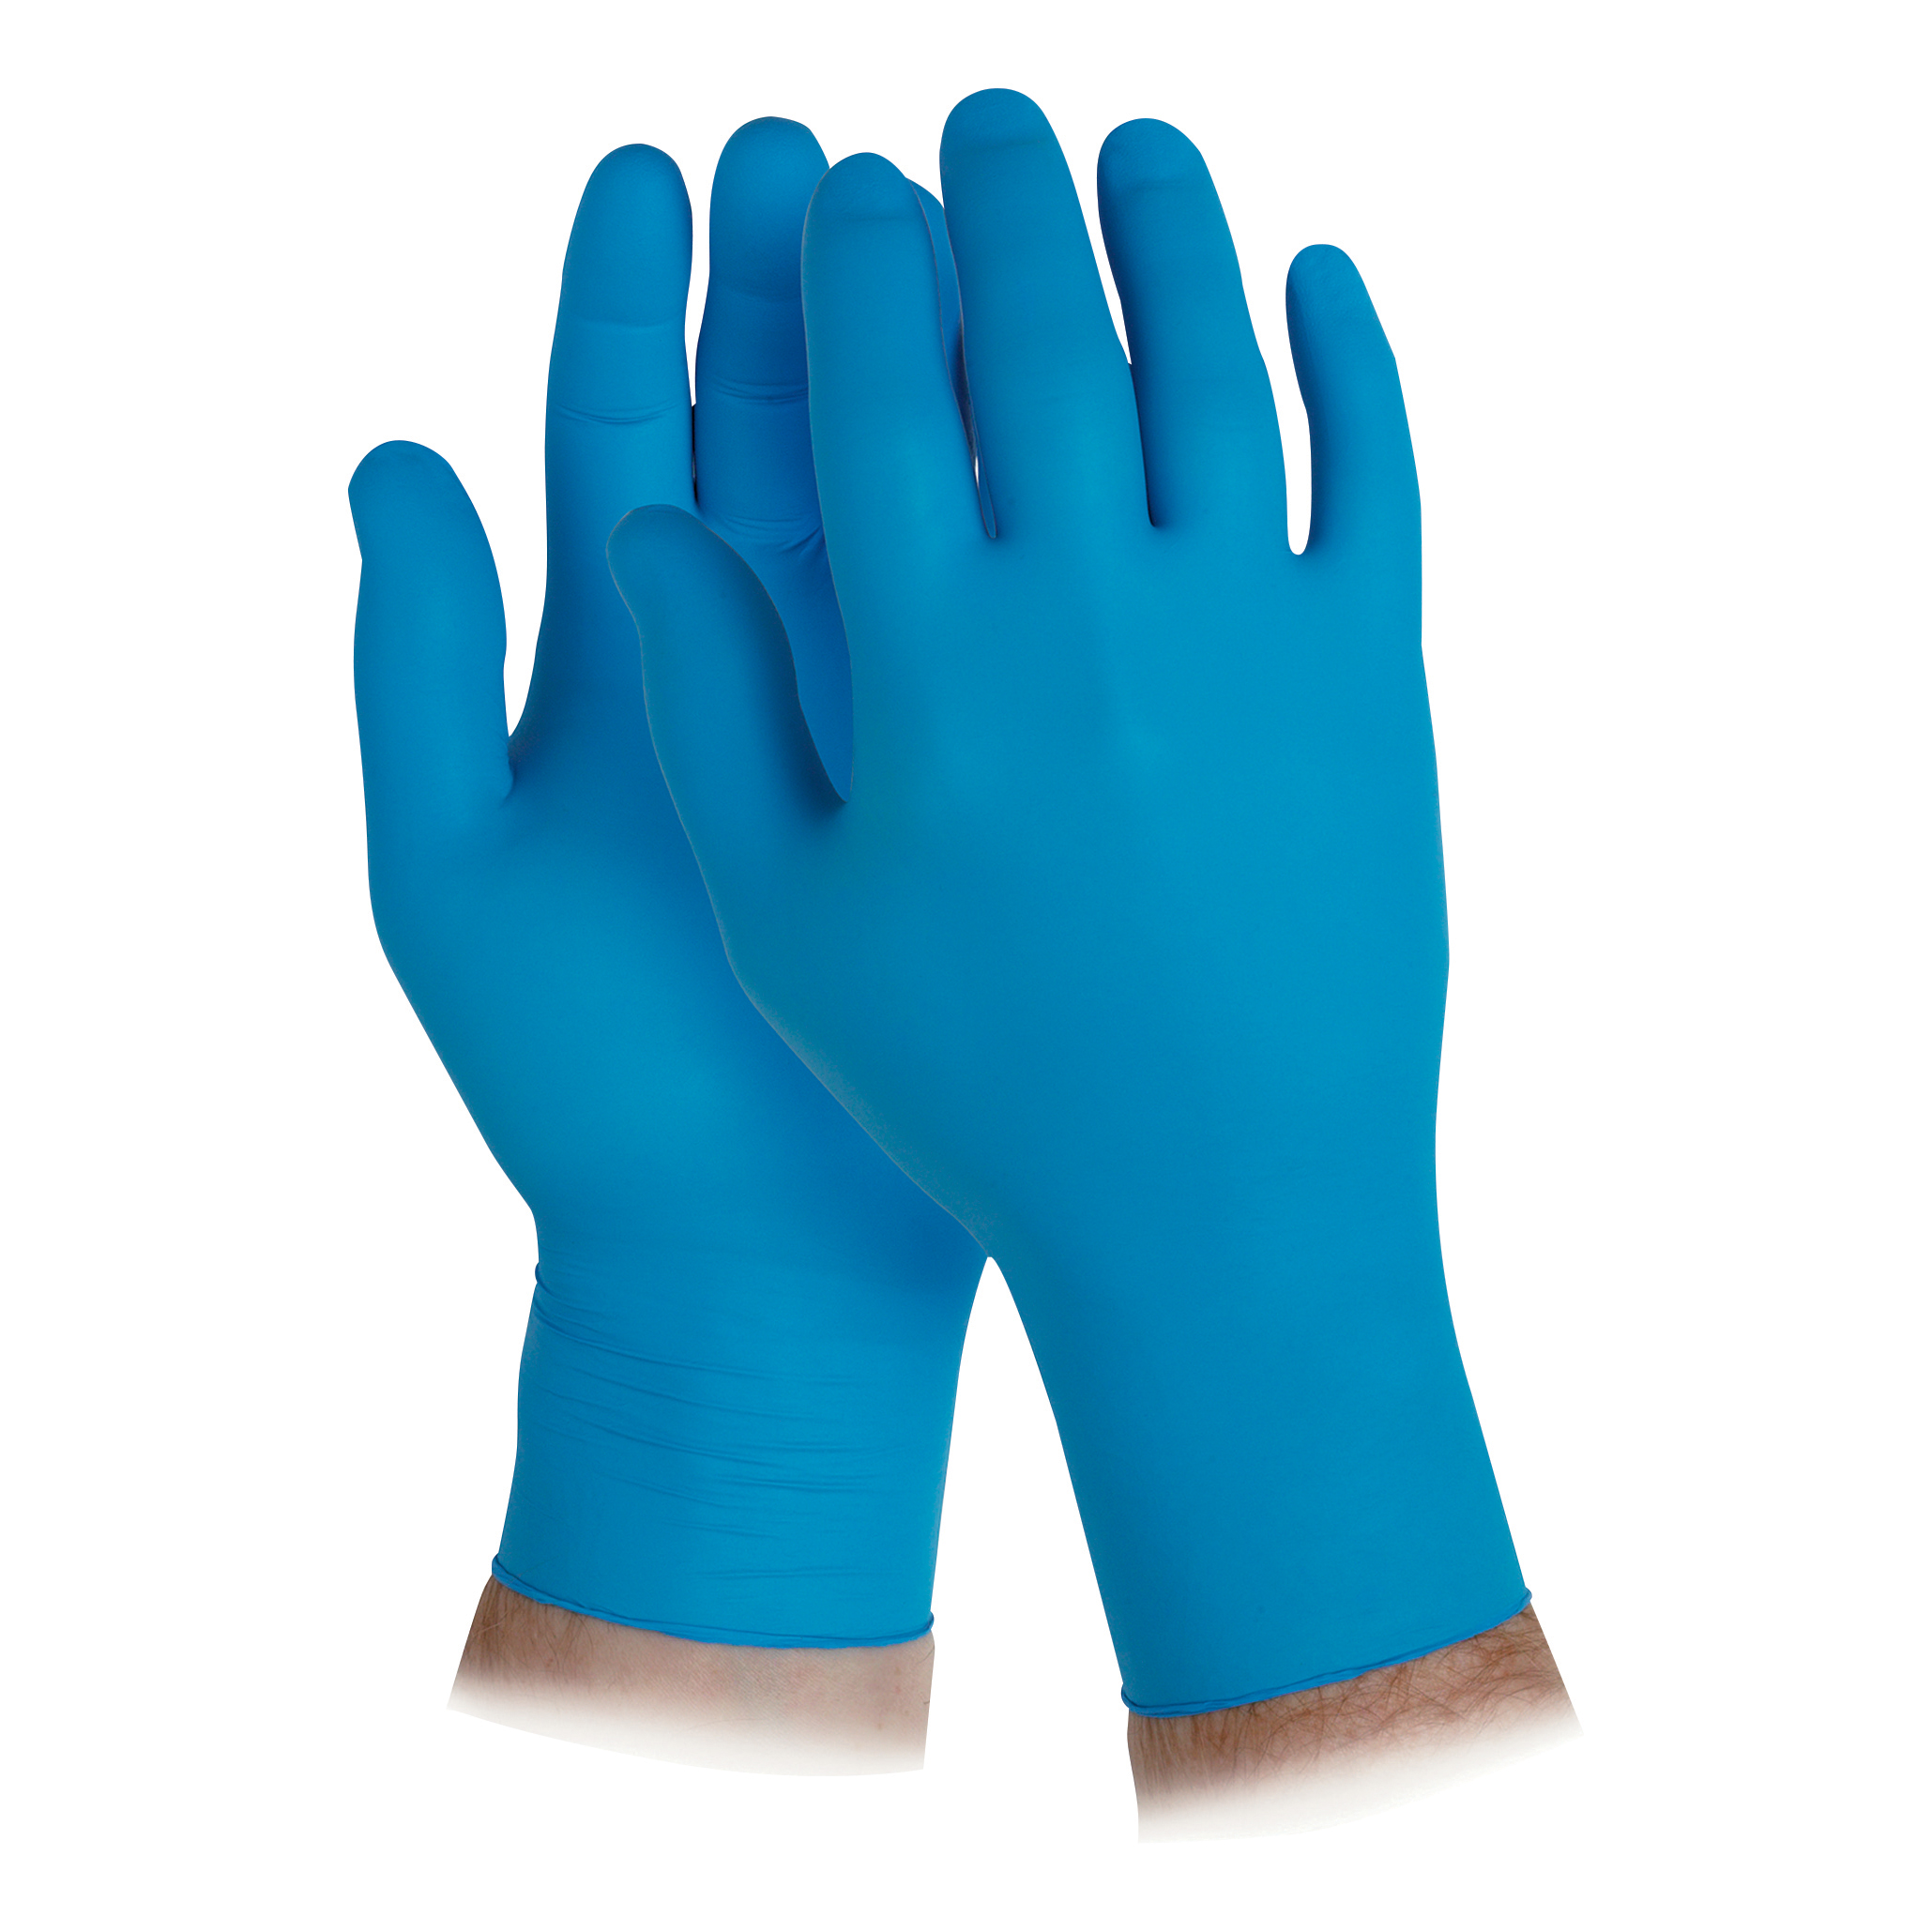 Hand Protection KleenGuard G10 Nitrile Gloves Powder Free Natural Rubber Large Arctic Blue Ref 90098 Box 200